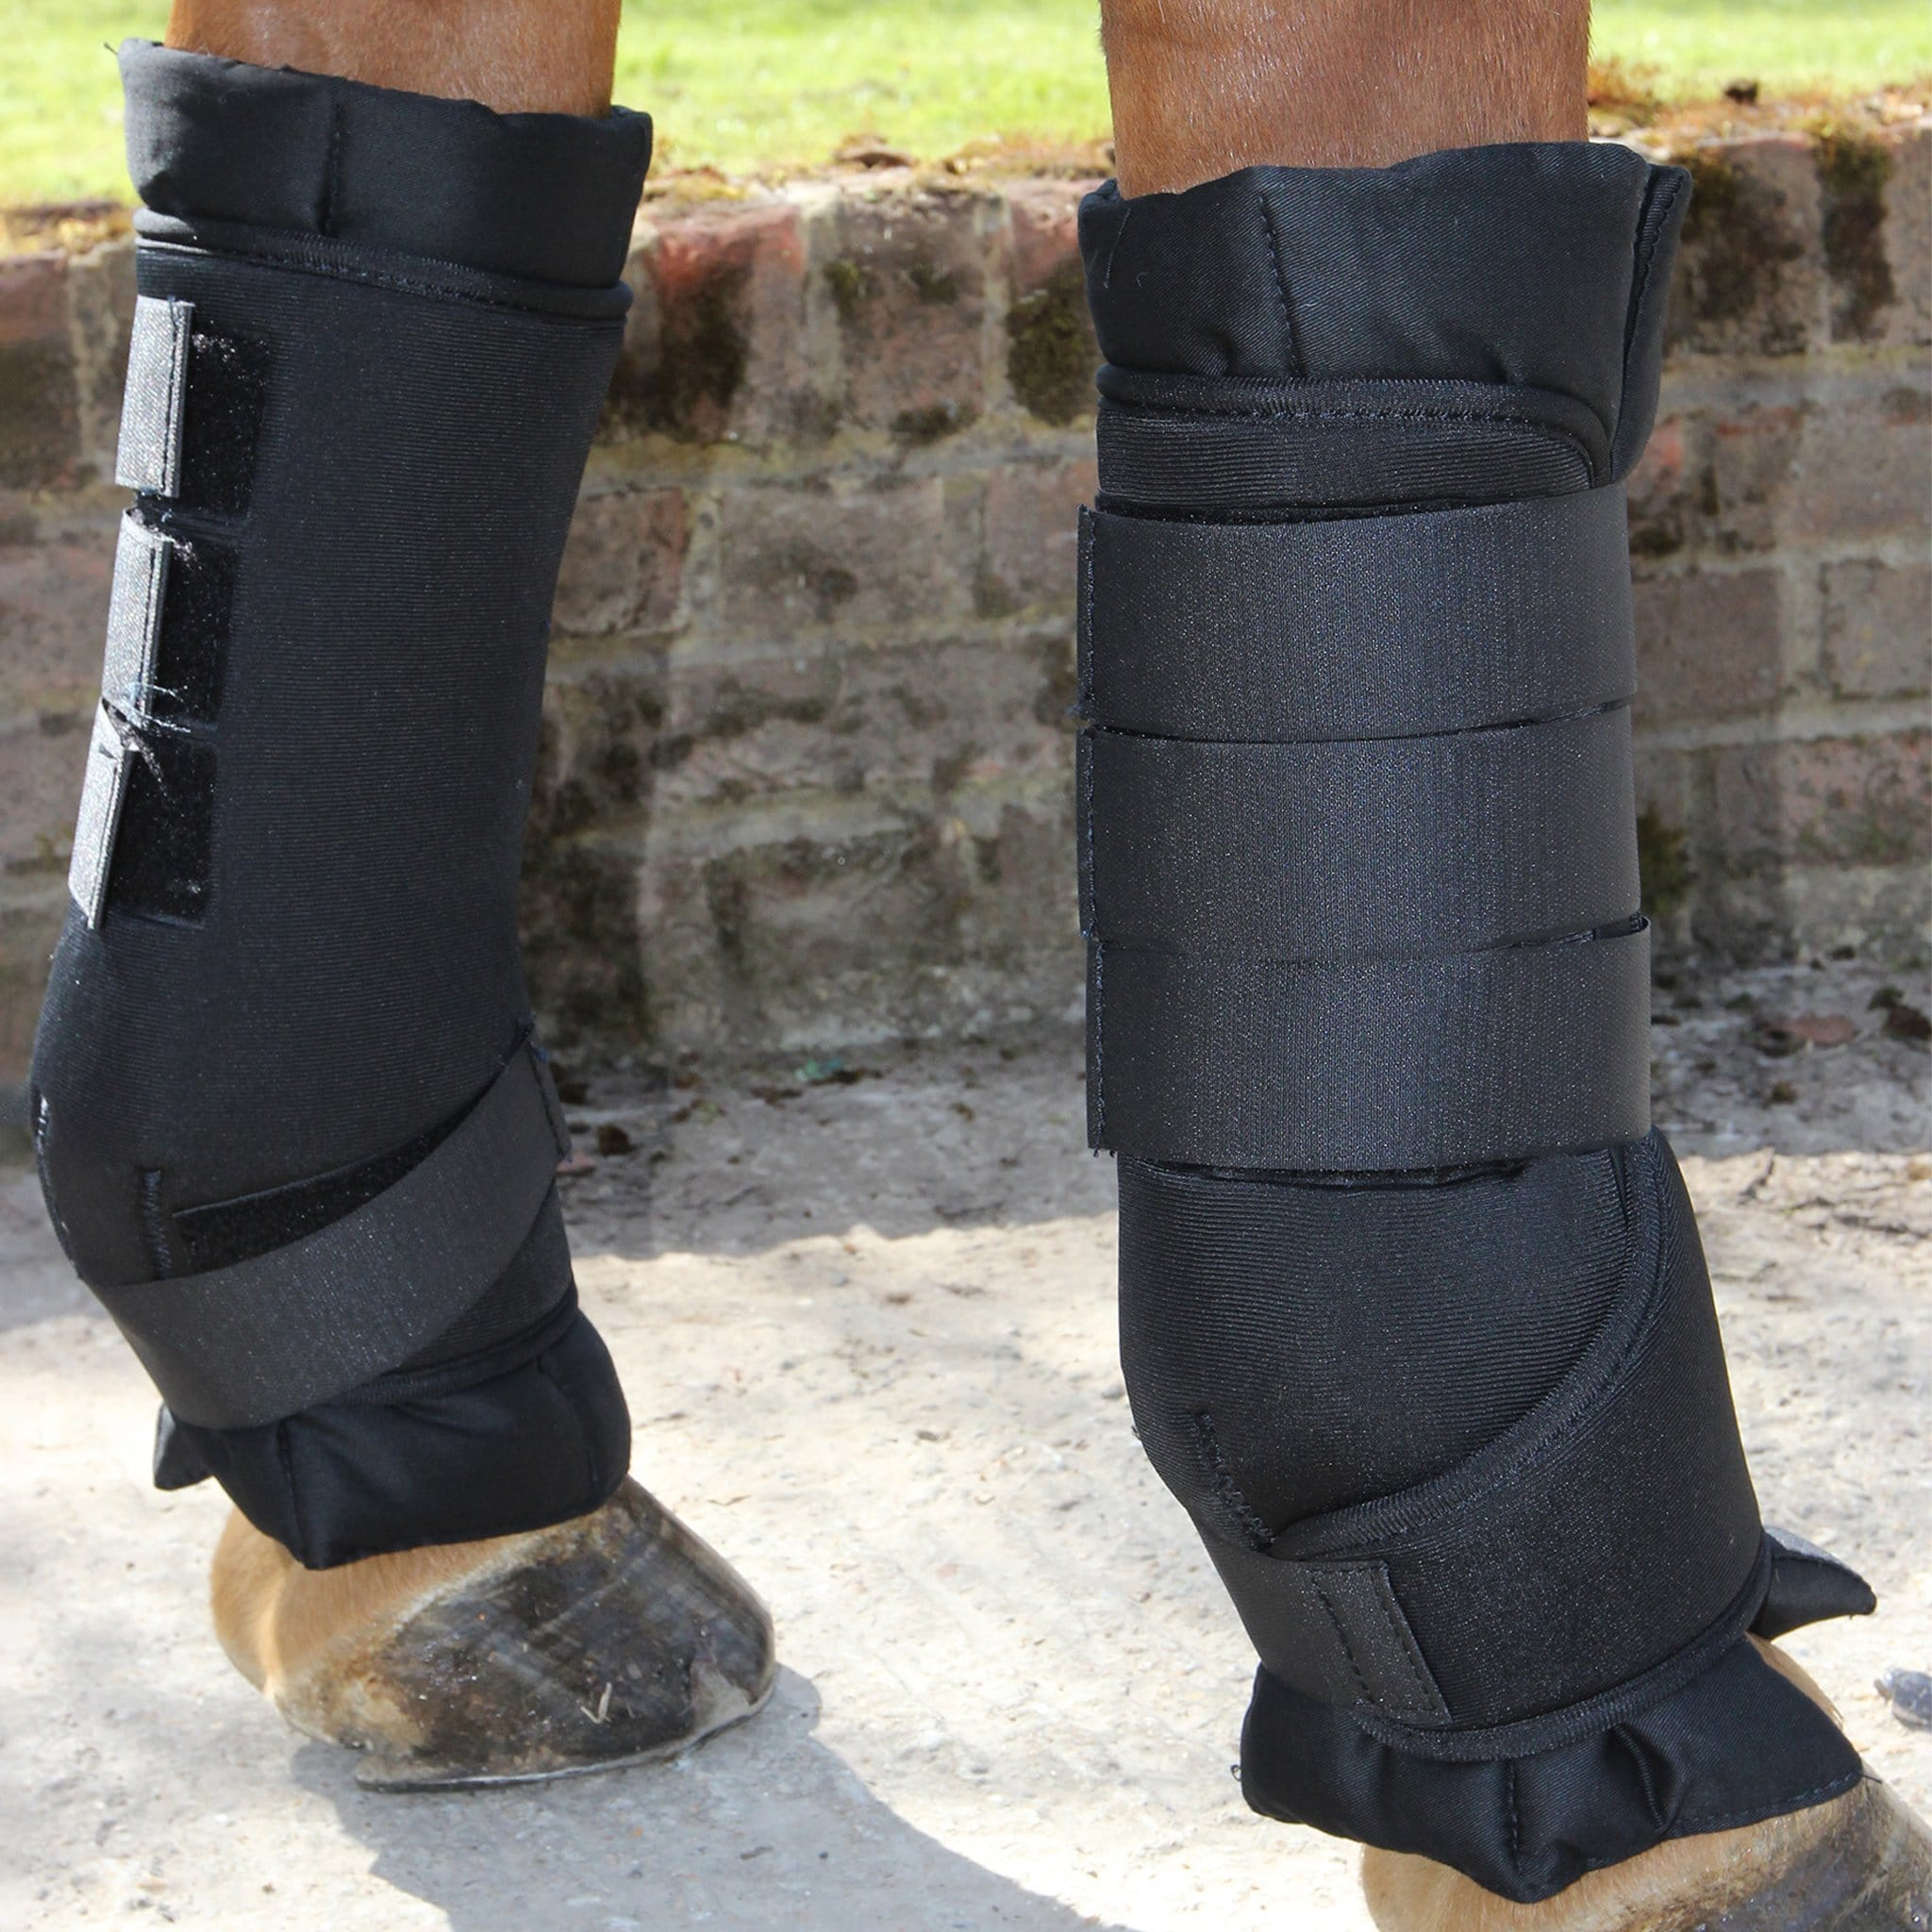 JHL Stable Boots On Horse 884966